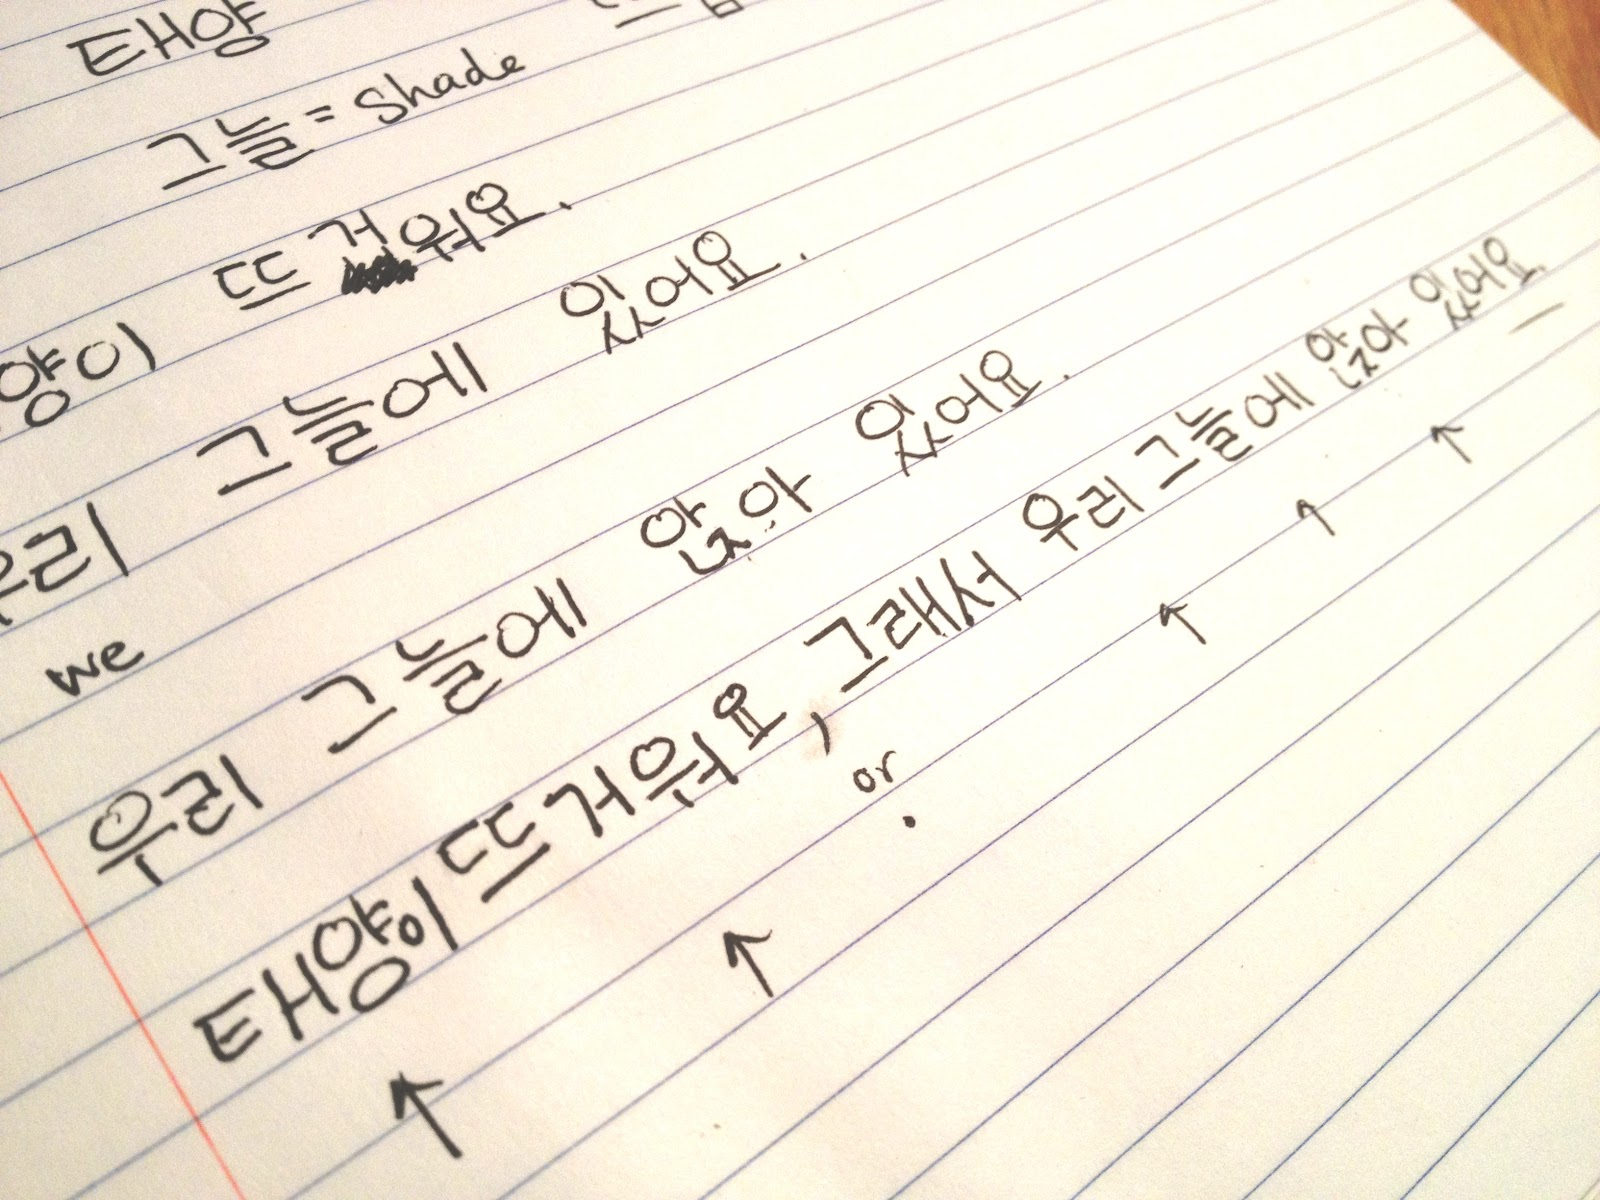 How to Write Korean by Hand